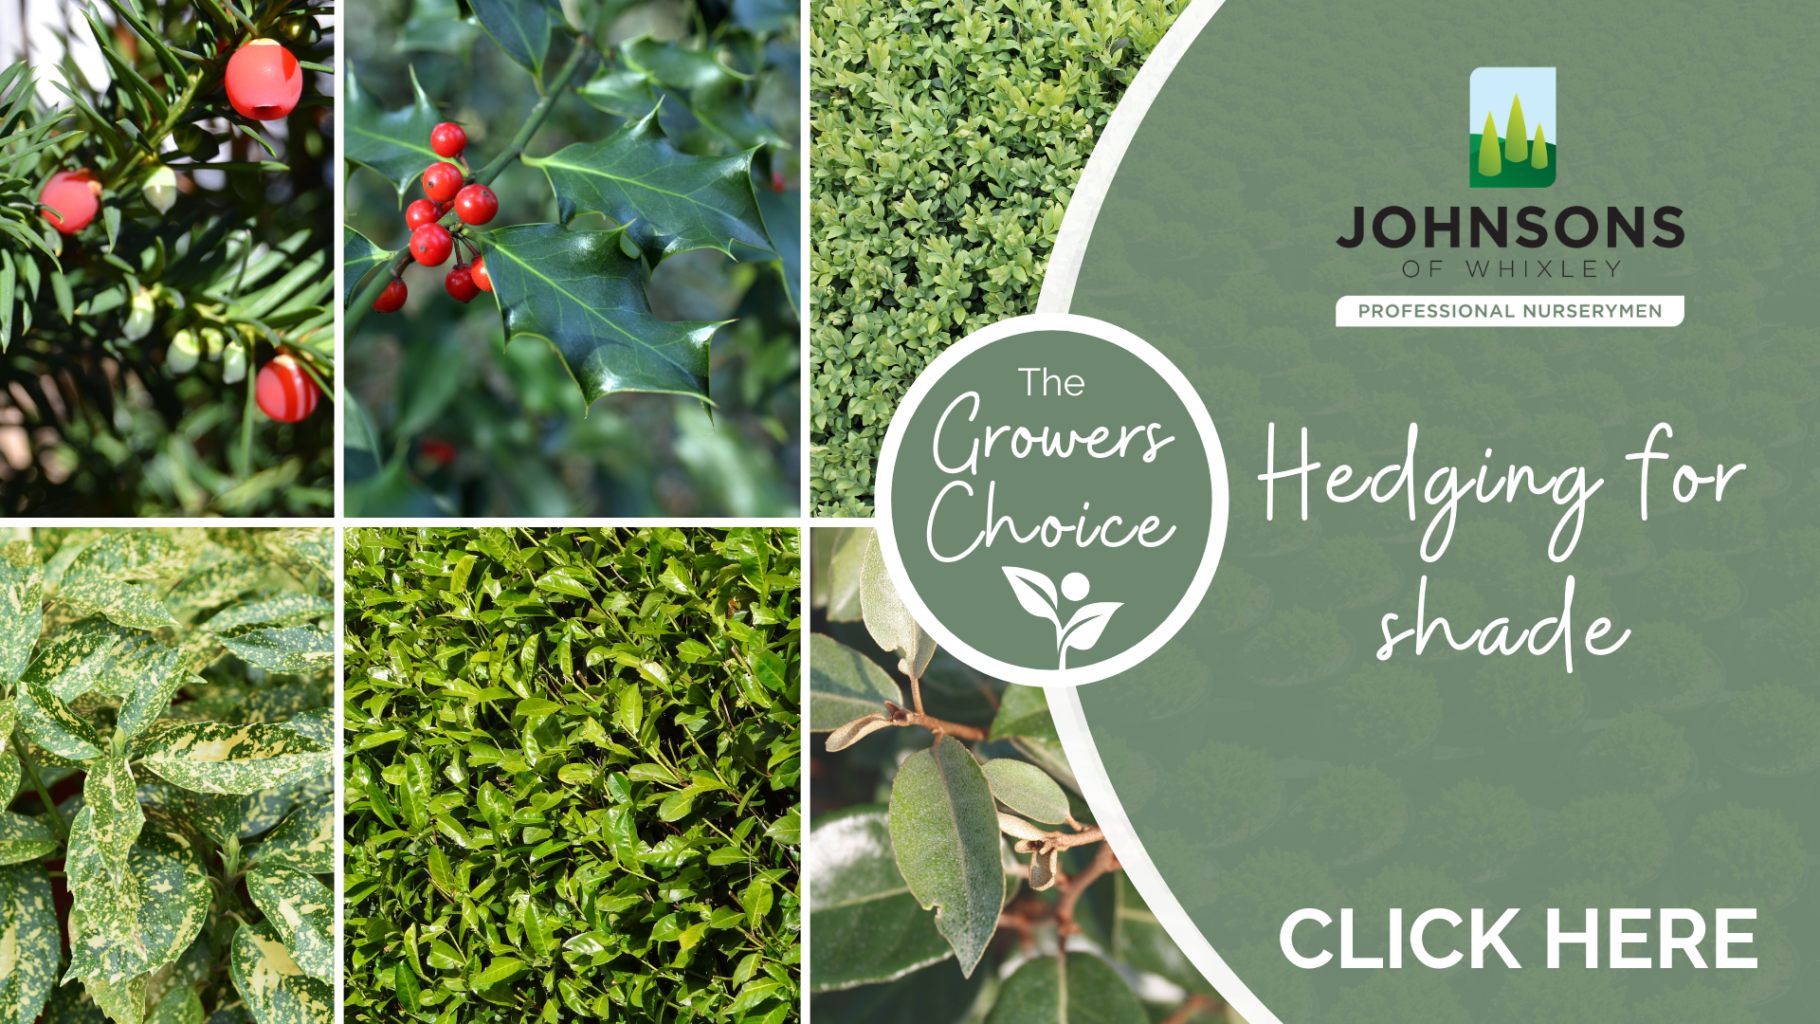 The Growers Choice: Hedging for shade